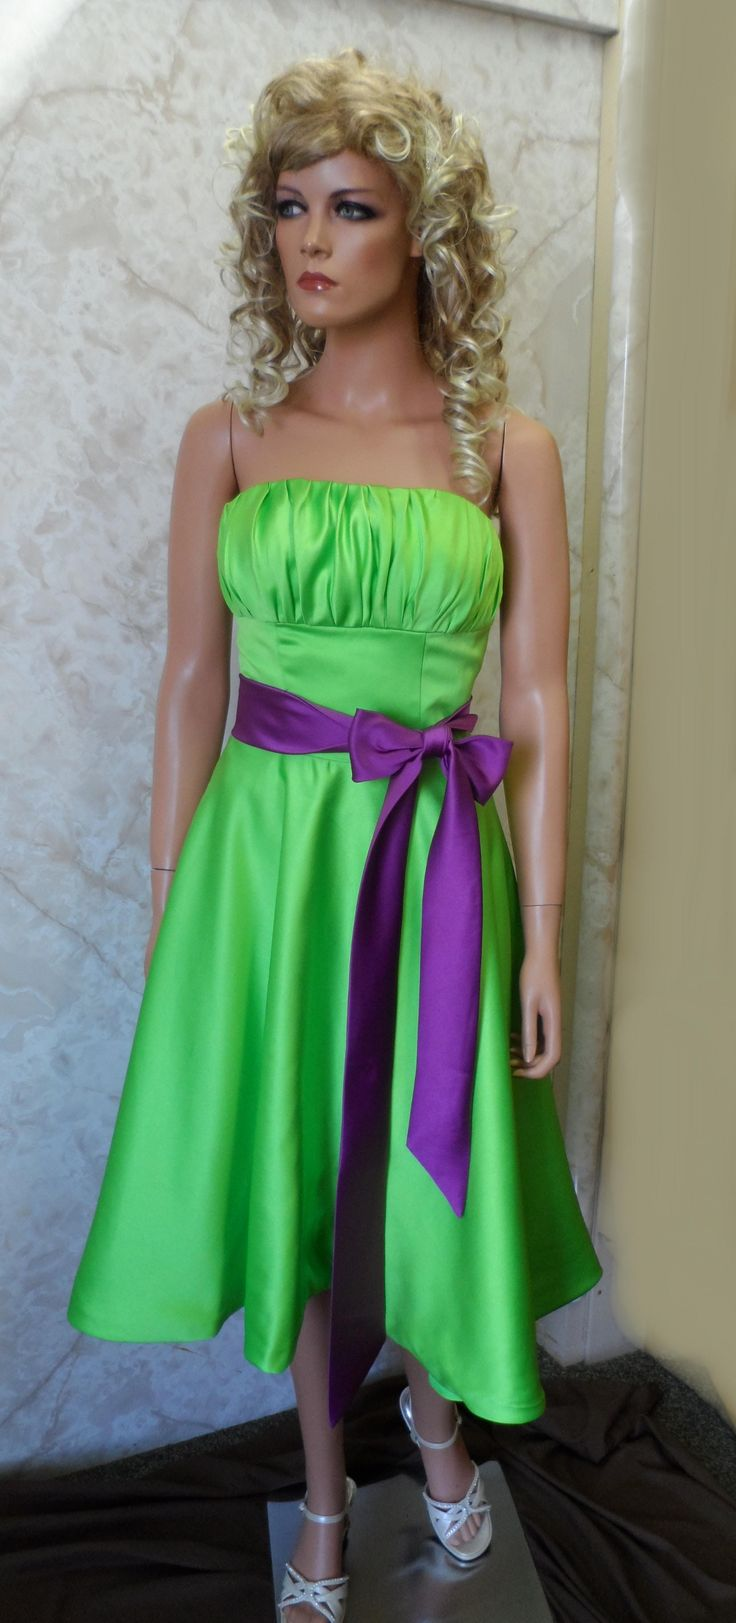 9 best Bridesmaid dresses in Limegreen images on Pinterest | Bride ...